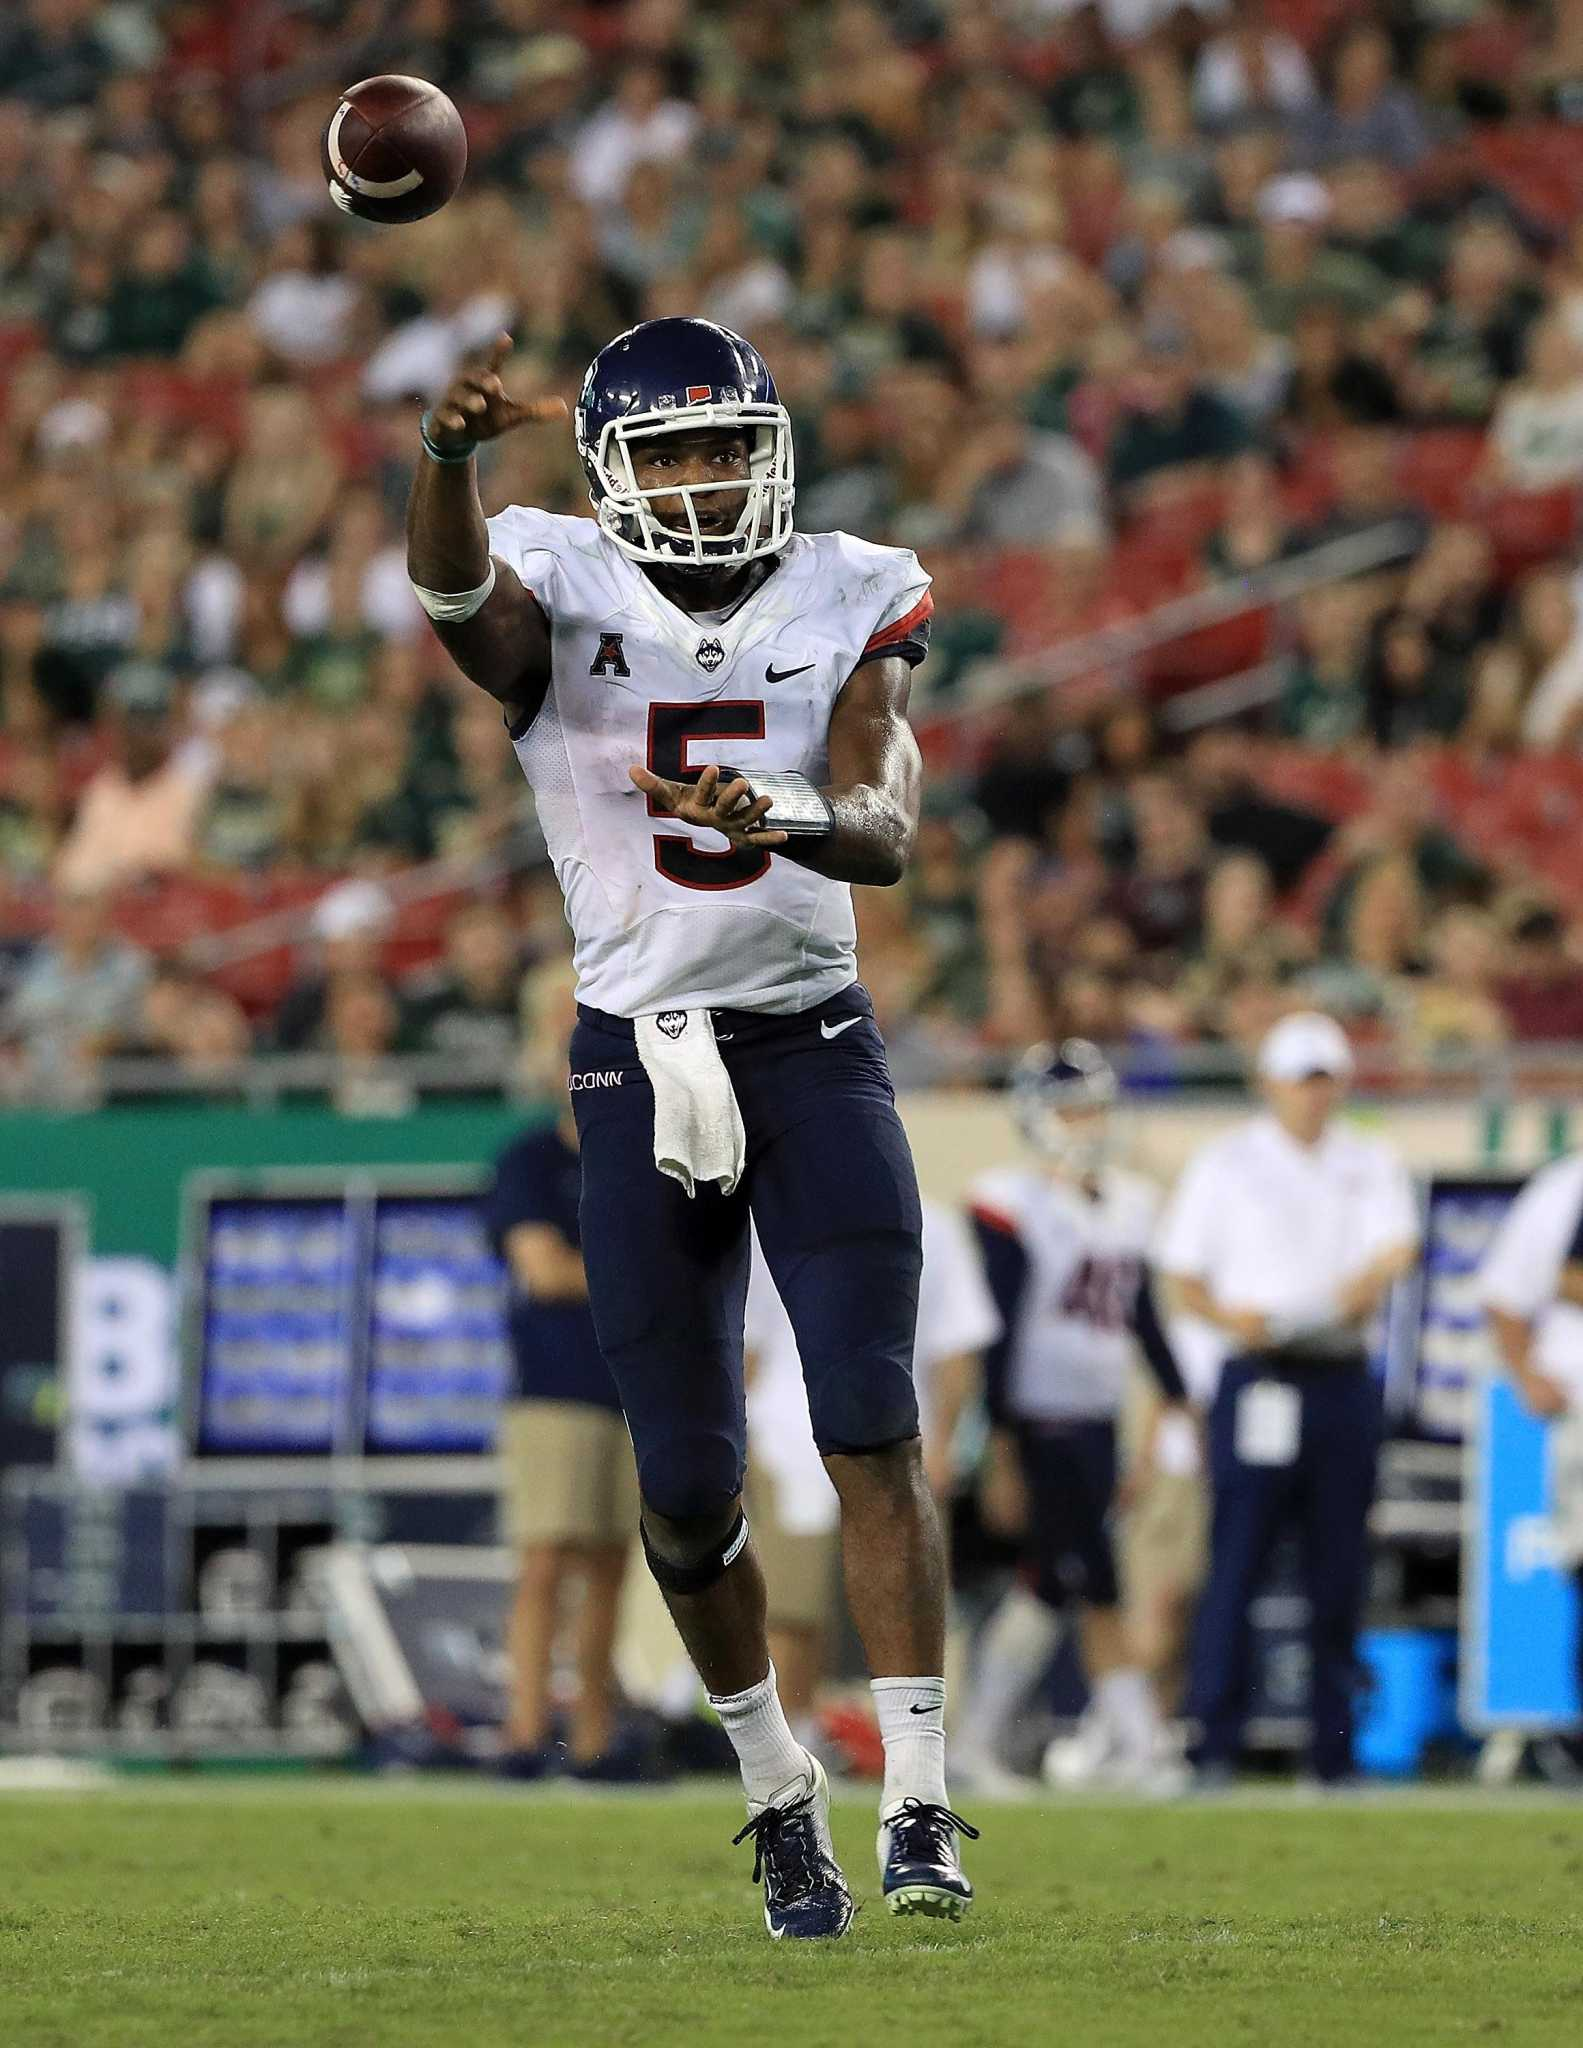 UConn QB David Pindell on verge of running into the record